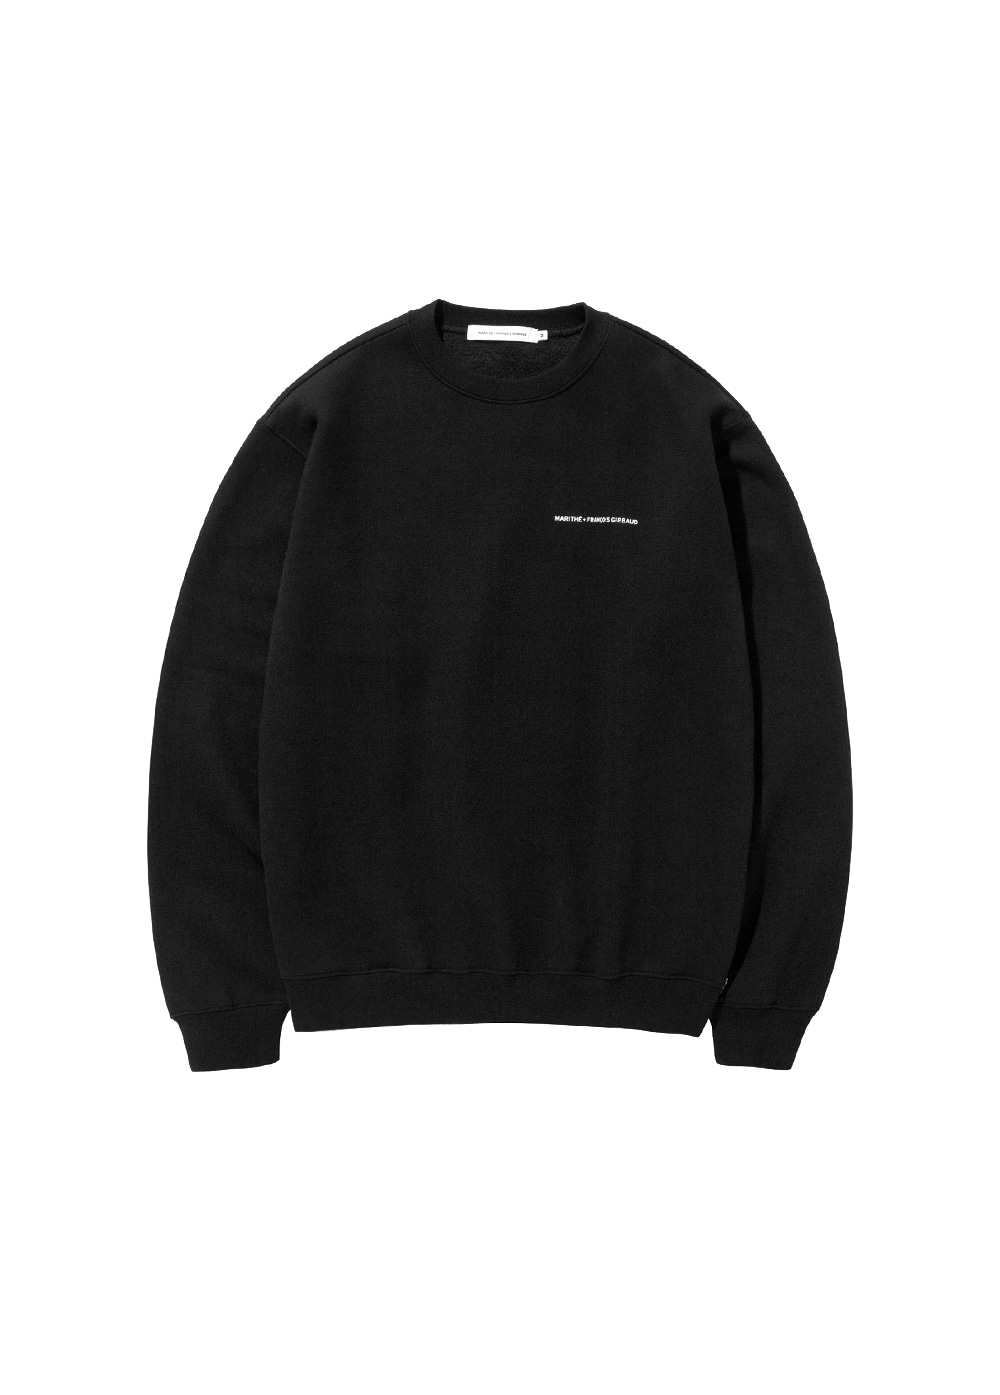 MFG NAME LOGO SWEATSHIRT black